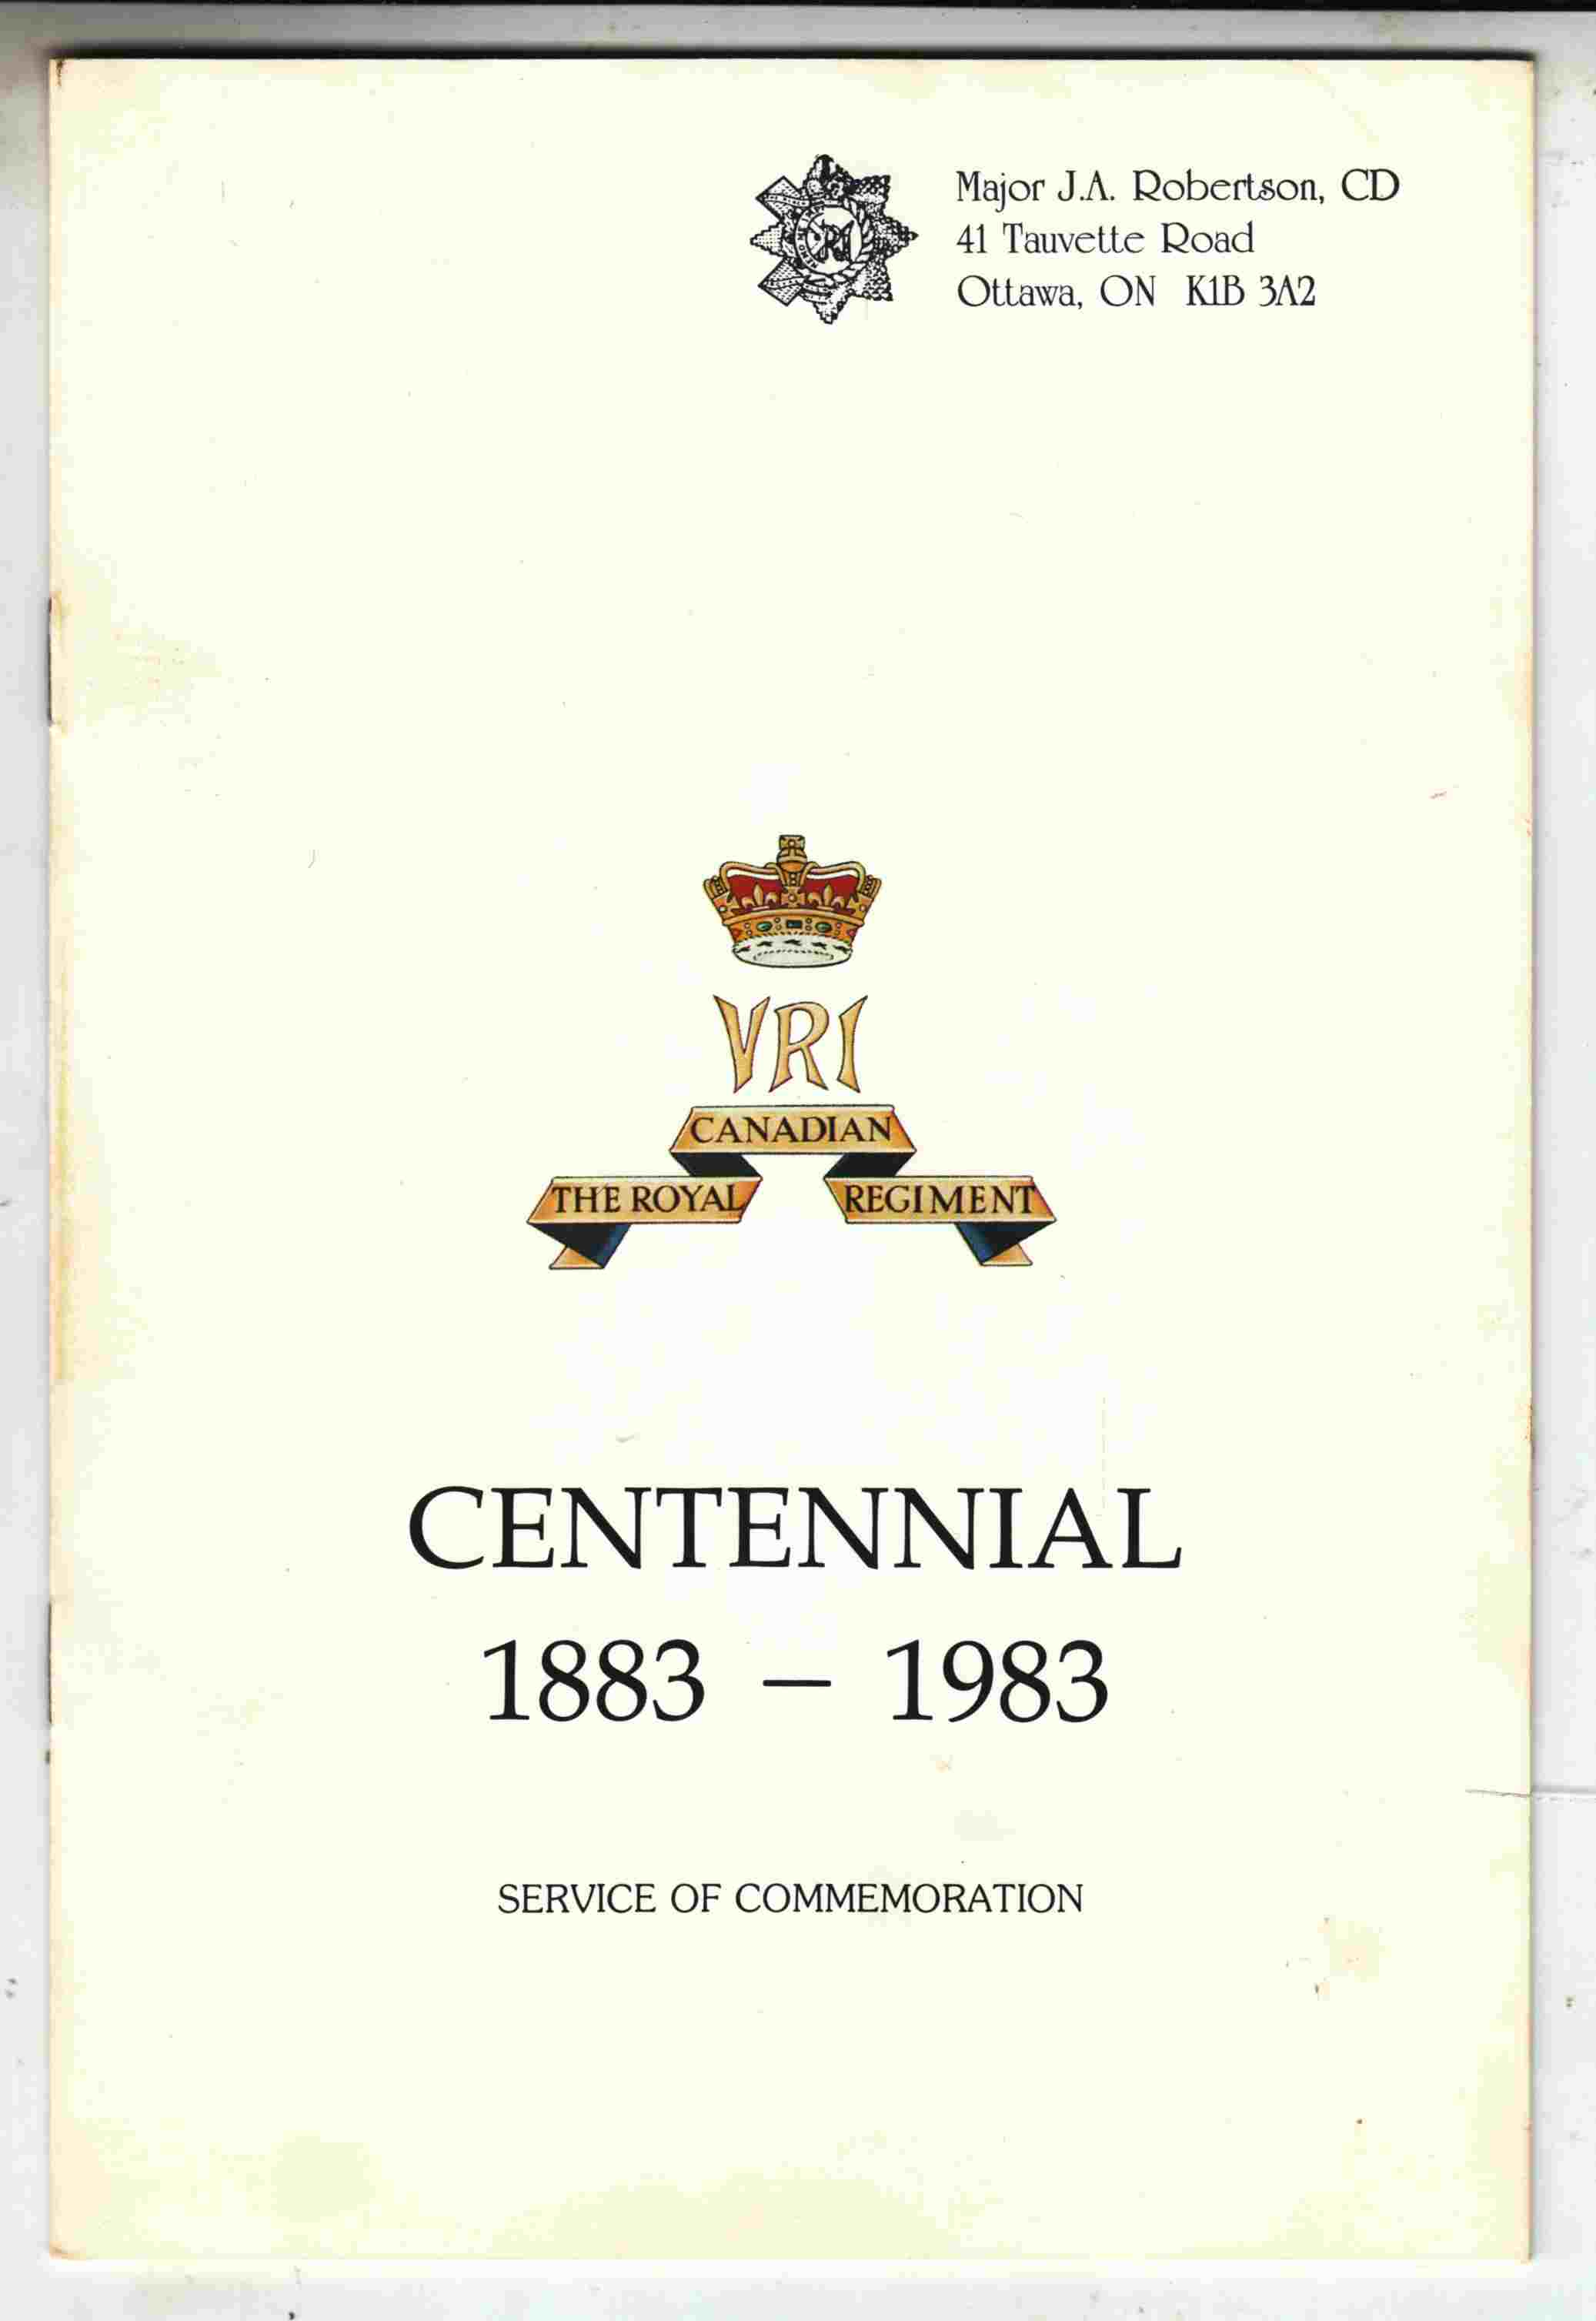 Image for The Royal Canadian Regiment Centennial 1883 - 1983 Service of Commemoration